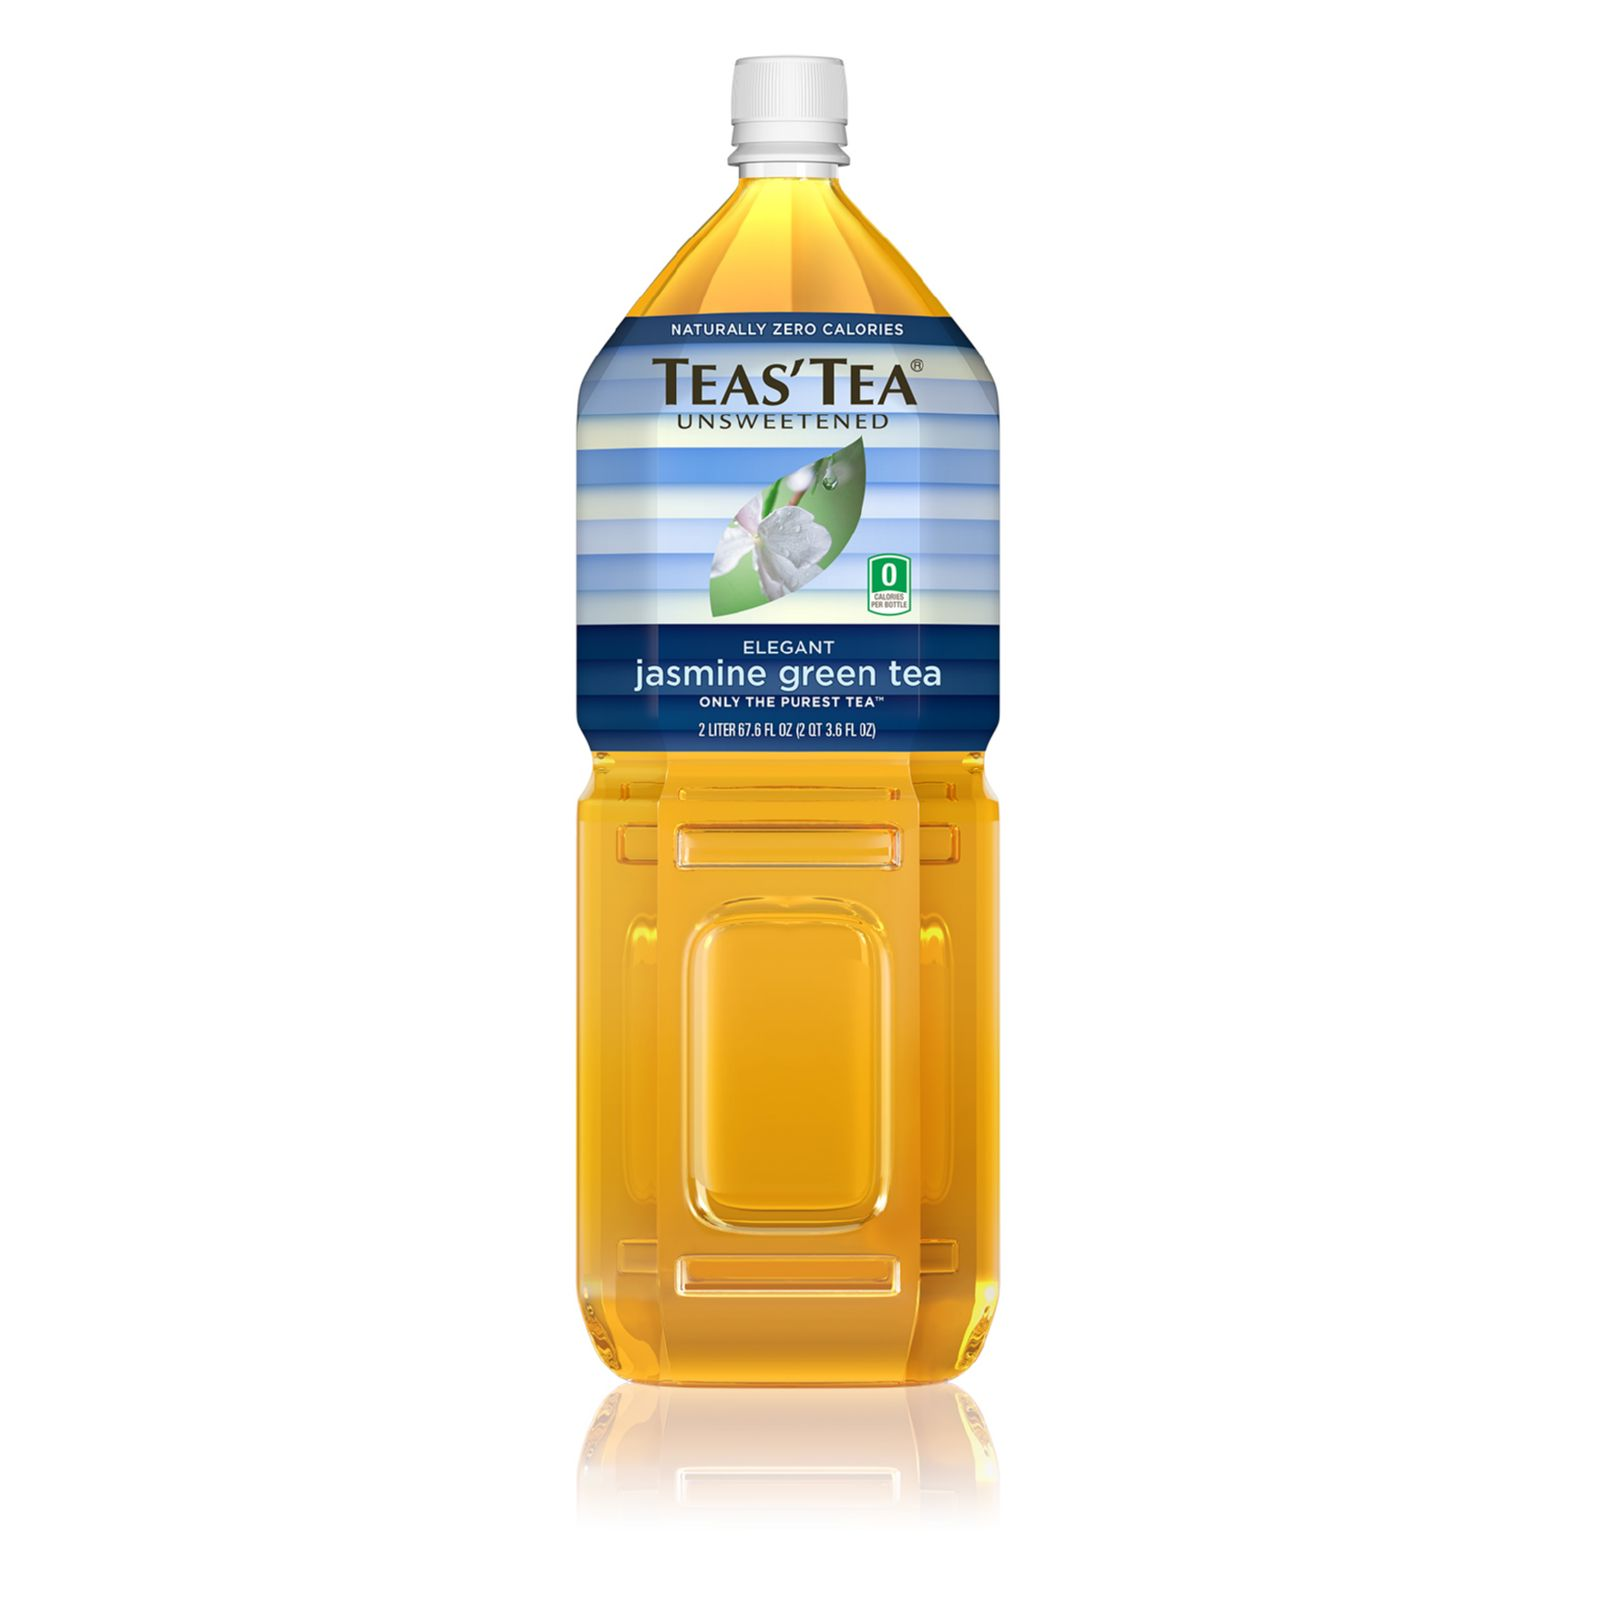 Teas' Tea Unsweetened Green Jasmine Tea - Case Of 6 - 2 Liter